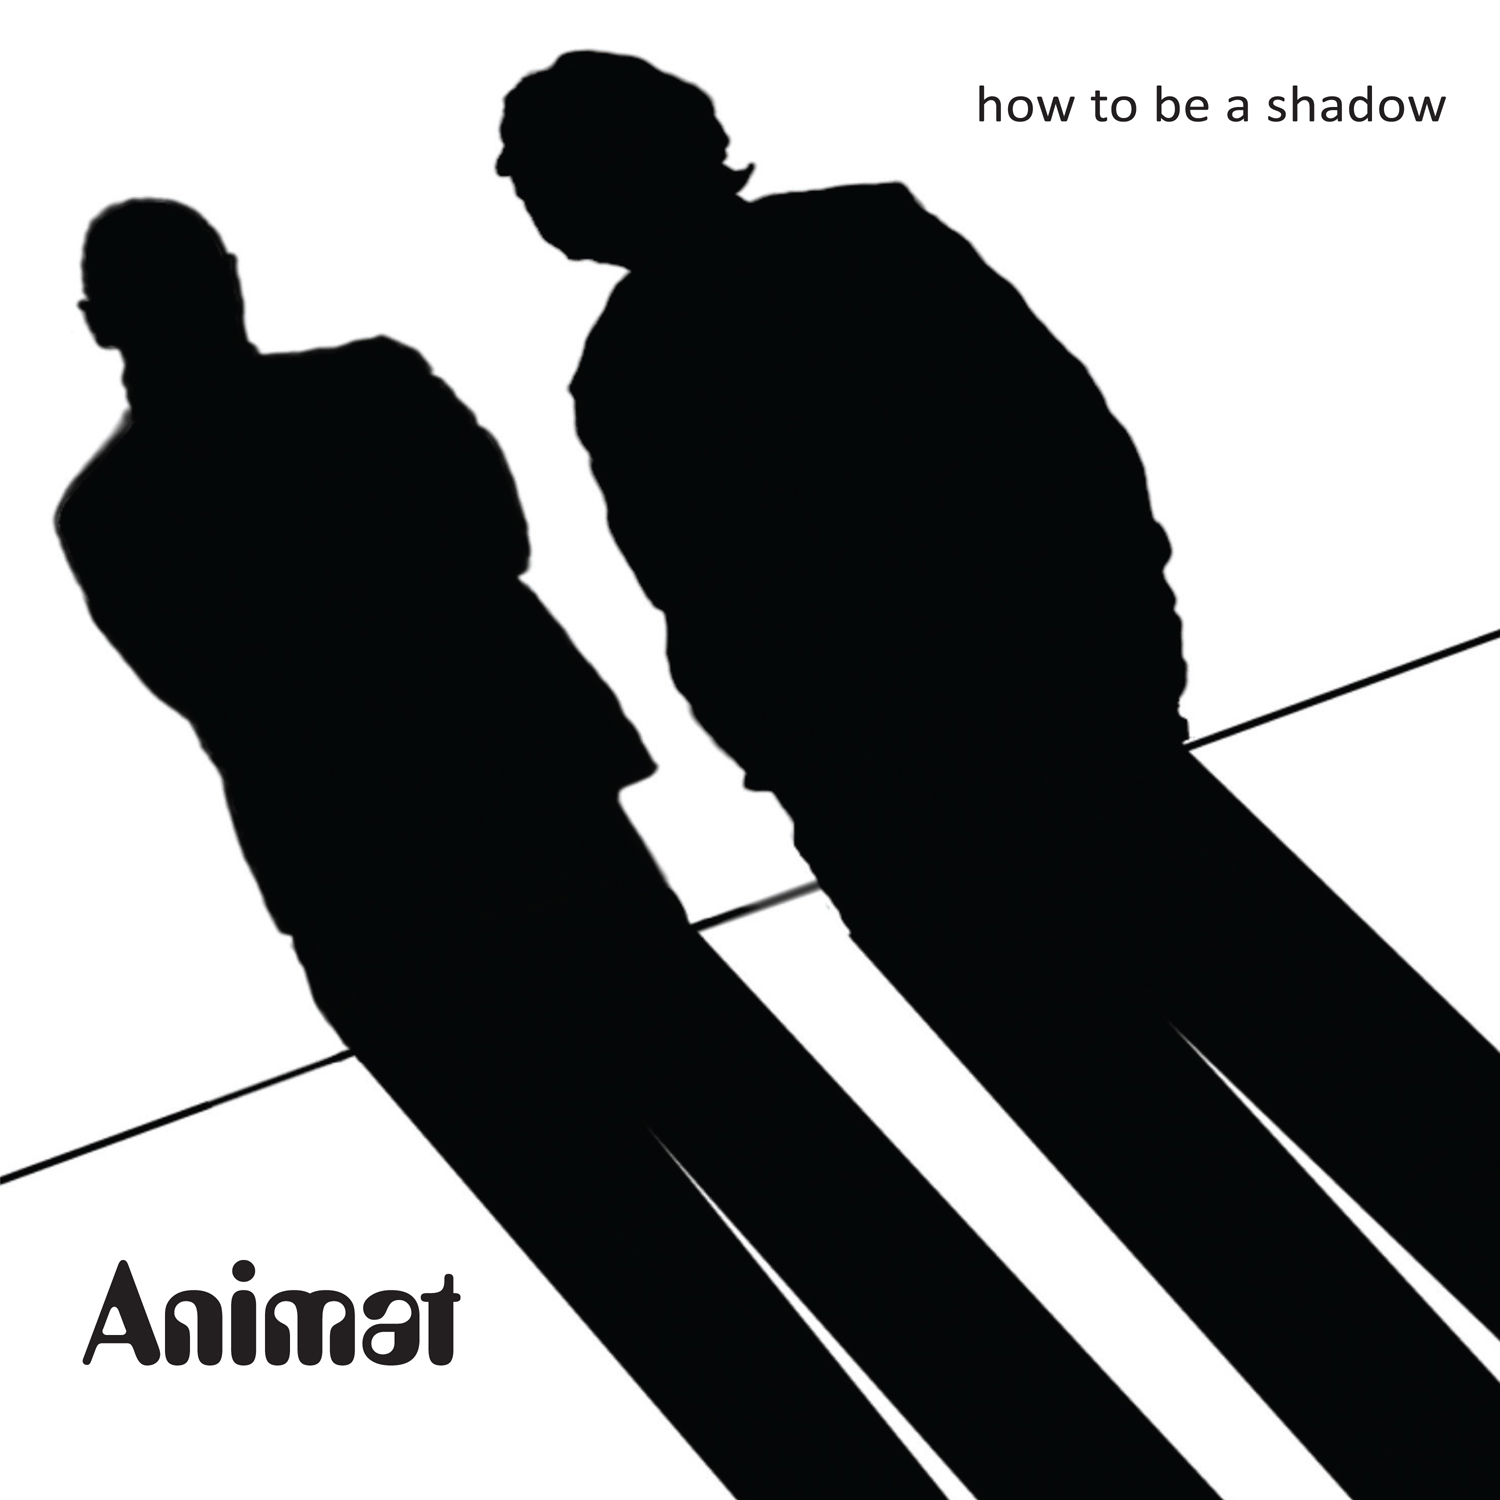 Animat – How to be a shadow